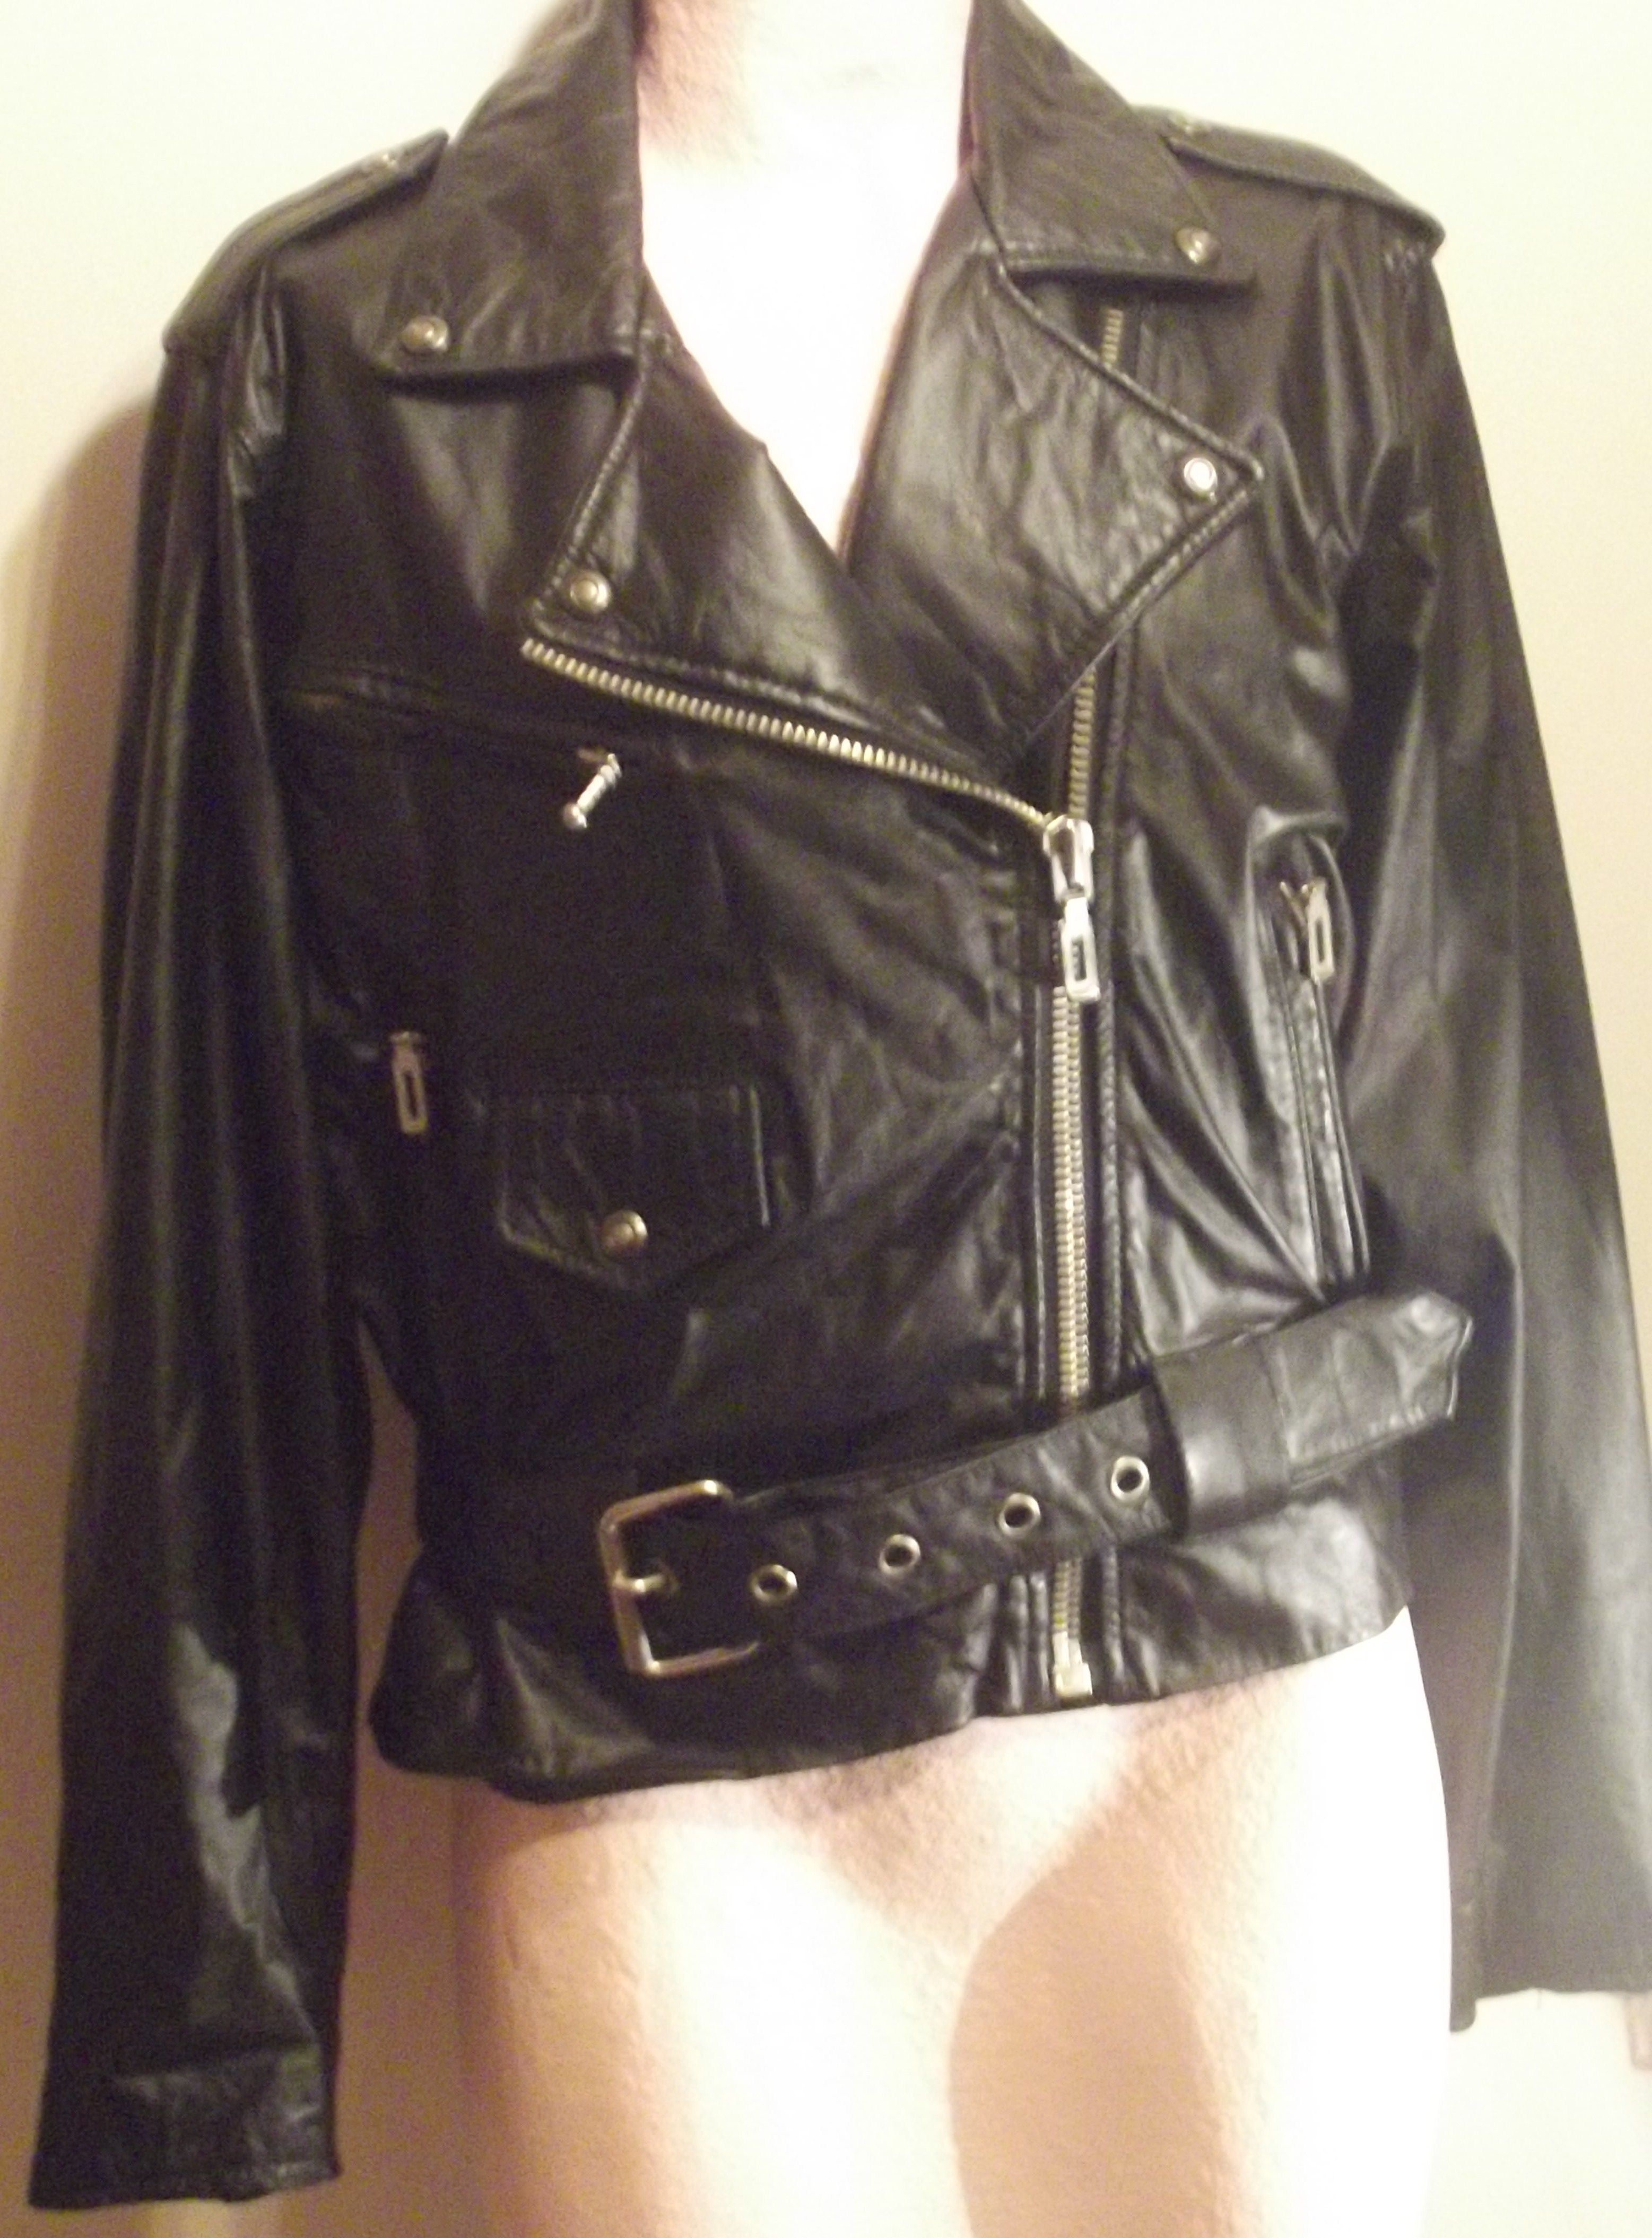 Leather jacket care - 80 S Bad Girl Leather Jacket I Don T Care Who You Are